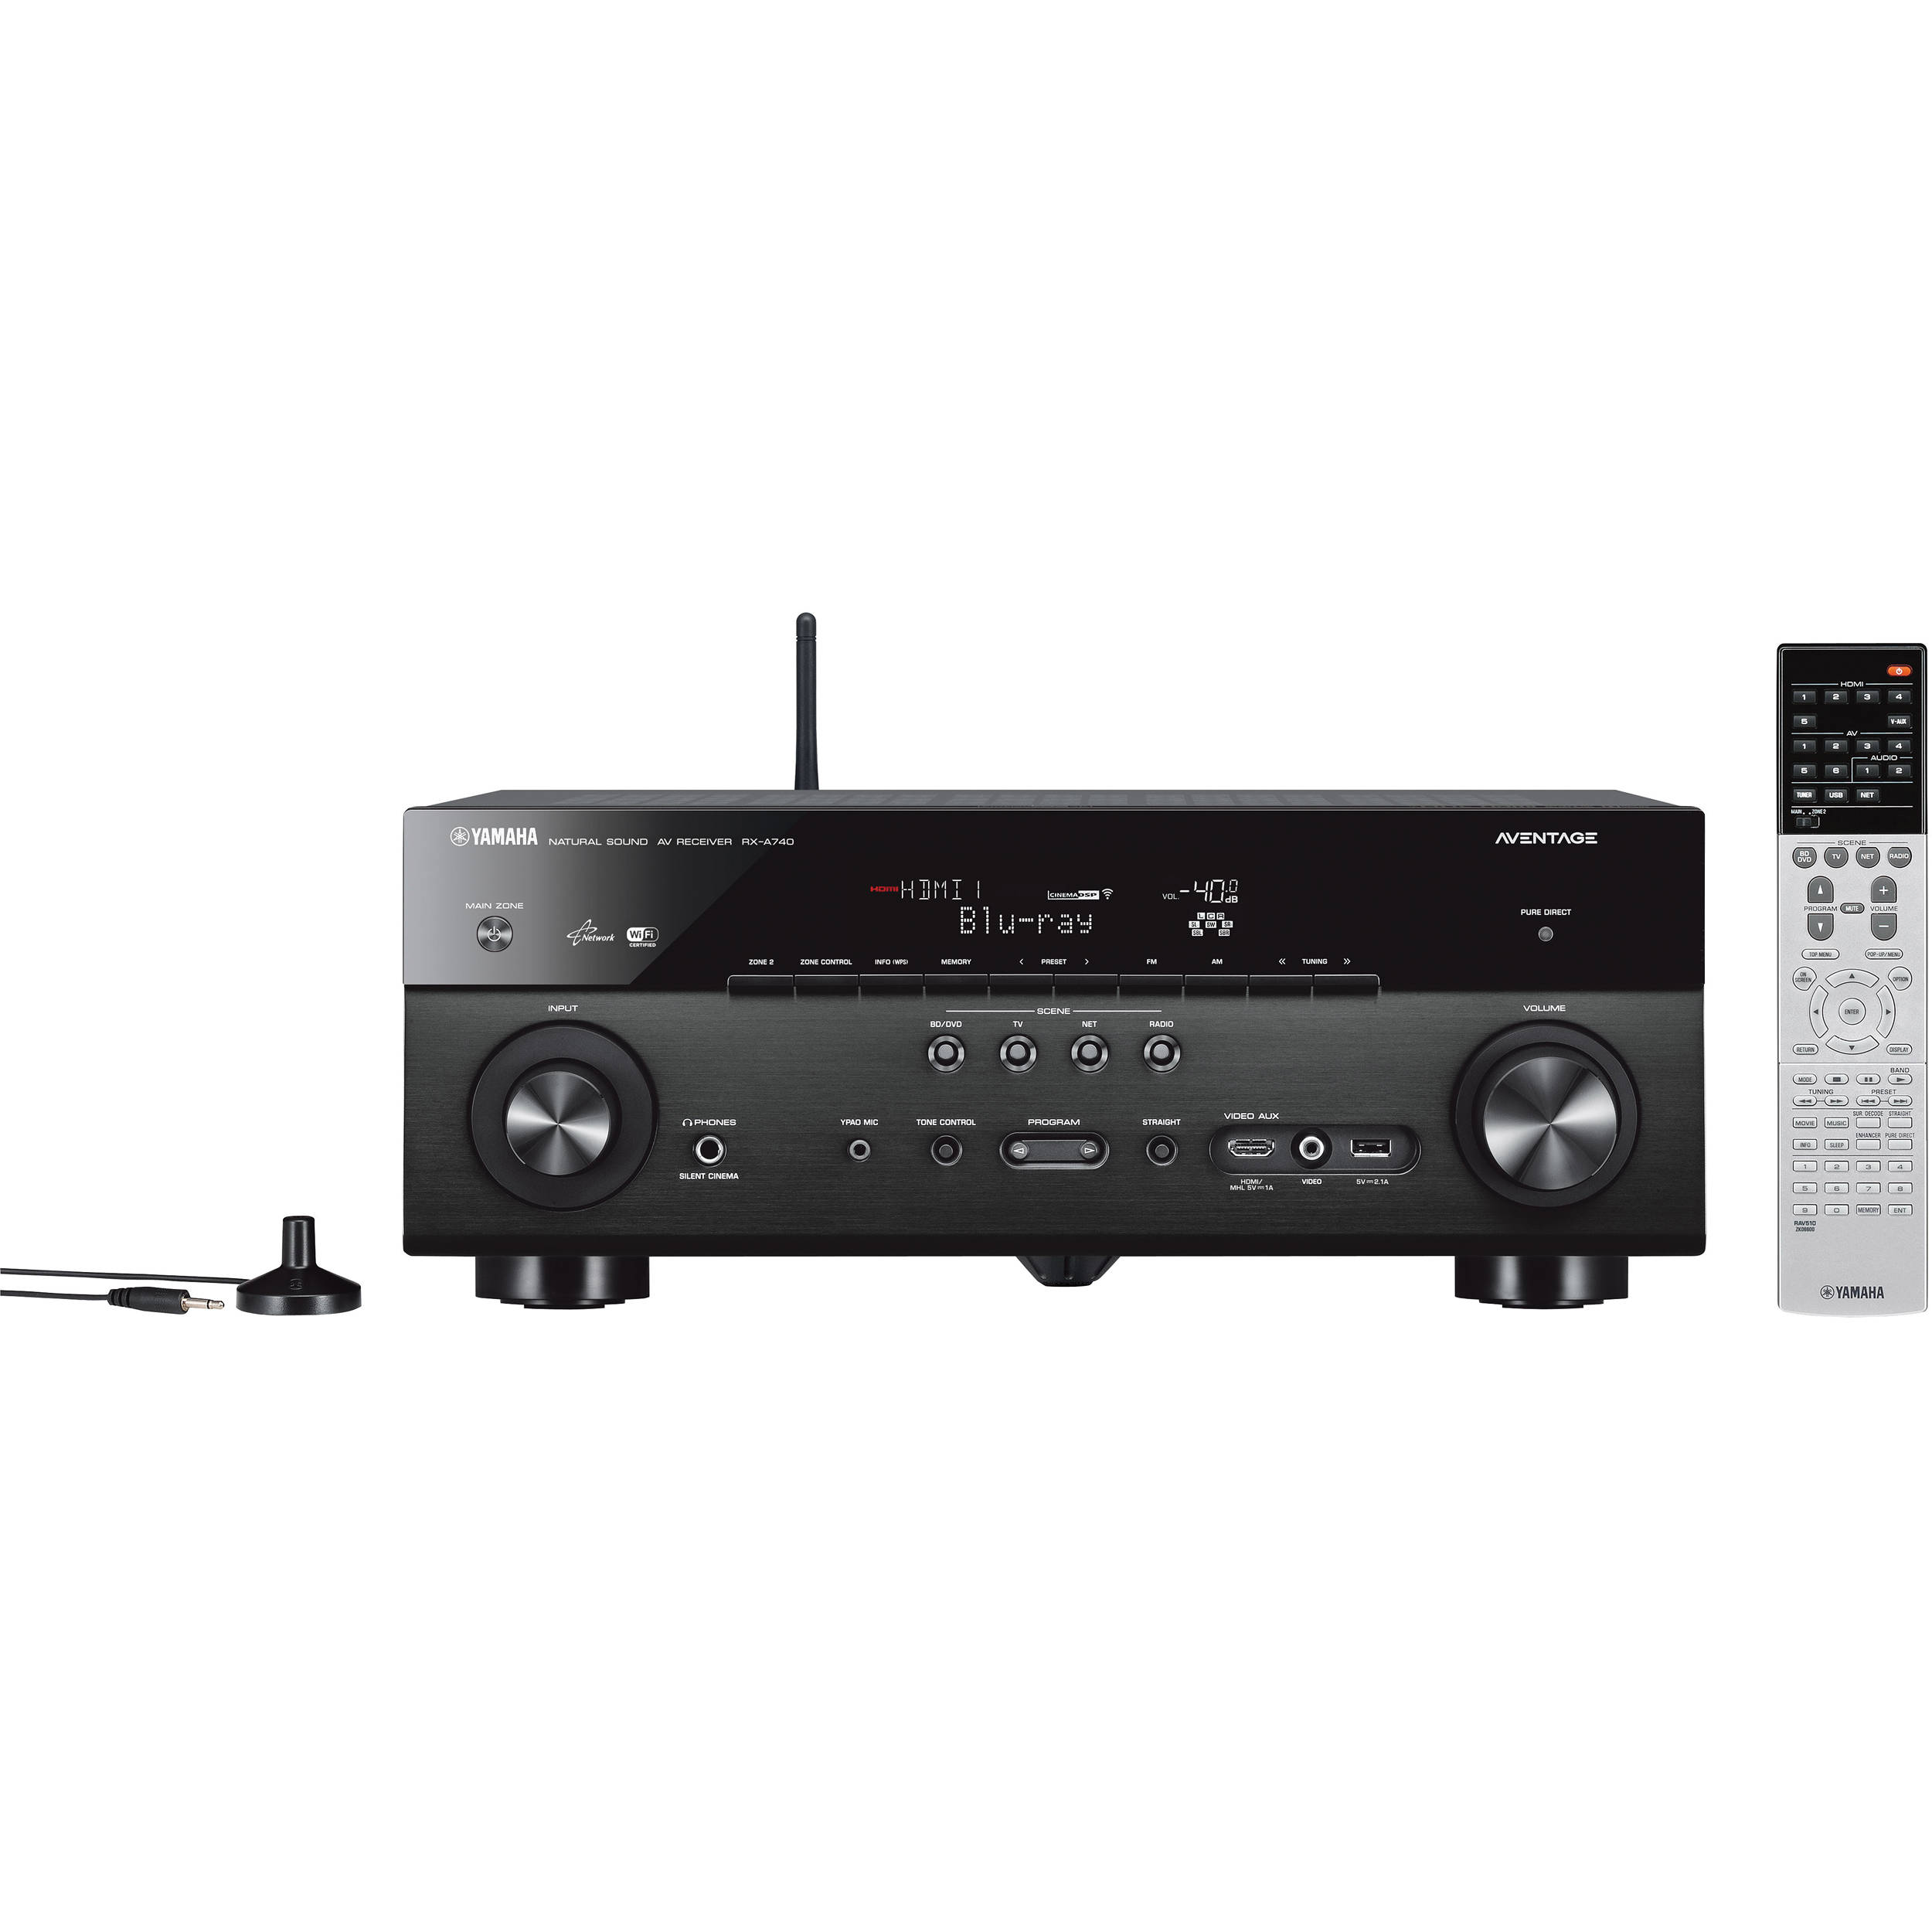 Yamaha AVENTAGE RX-A740 7 2 Channel Network AV Receiver